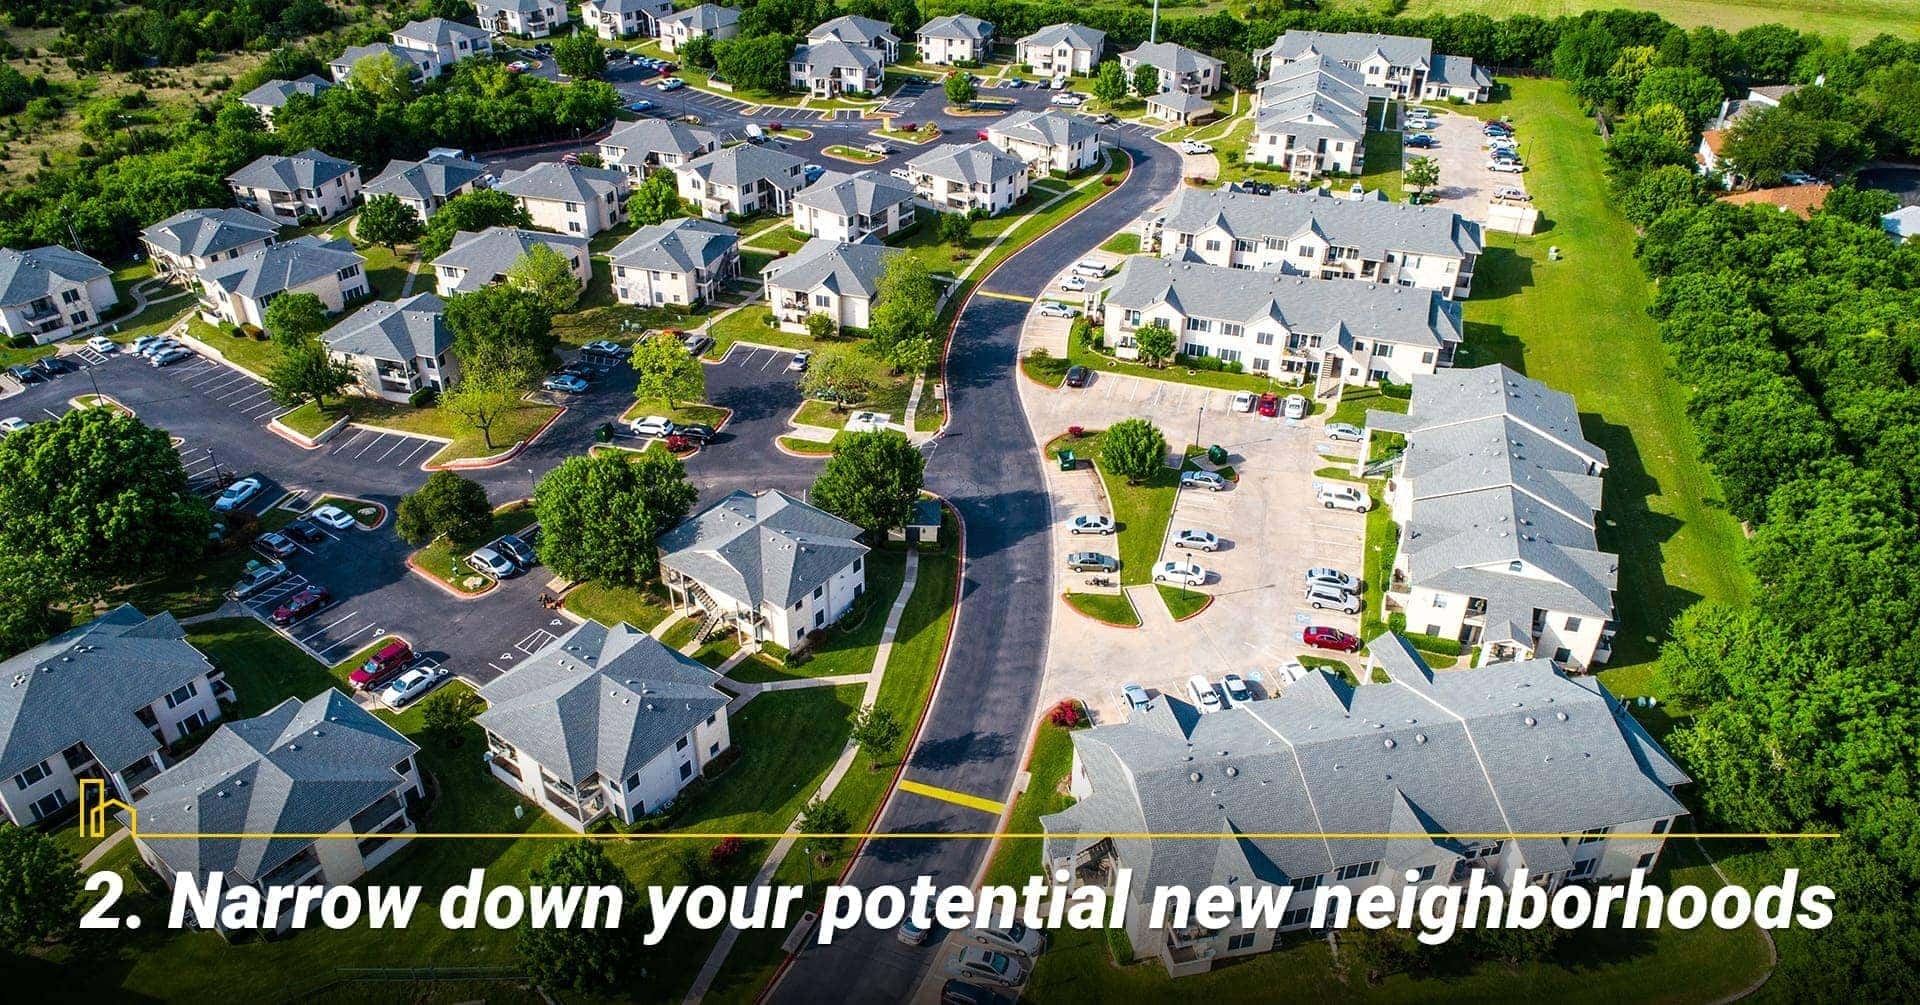 Narrow down your potential new neighborhoods, location location location